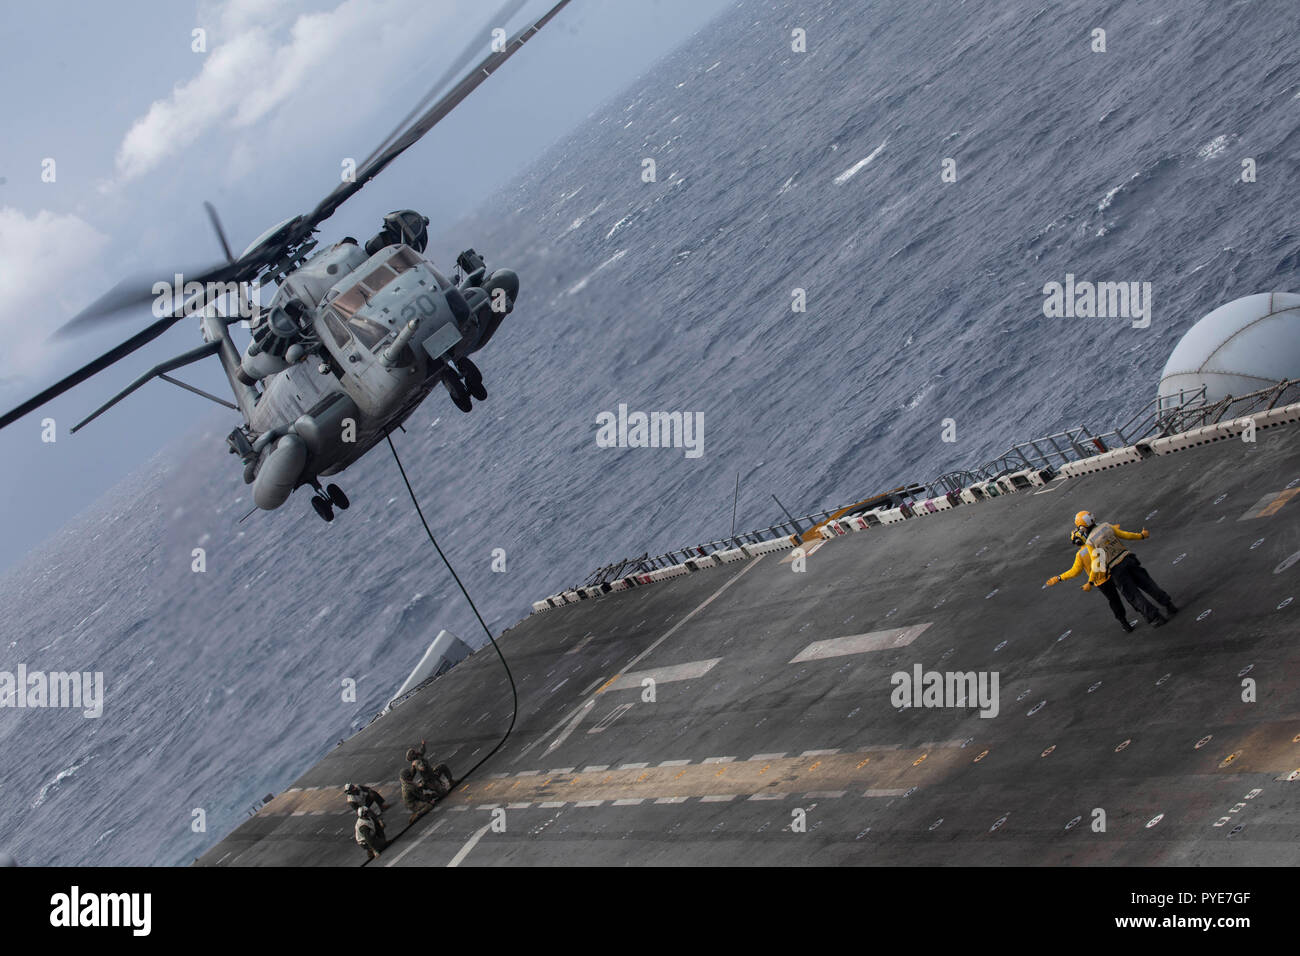 A CH-53E Super Stallion with Marine Medium Tiltrotor Squadron 264 (Reinforced), 22nd Marine Expeditionary Unit, hovers above the flight deck while conducting fast rope training during the Carrier Strike Group 4 Composite Training Unit Exercise (COMPTUEX) aboard the Wasp-class amphibious assault ship USS Kearsarge (LHD 3), Oct. 25, 2018. COMPTUEX is the final pre-deployment exercise that certifies the combined Kearsarge Amphibious Ready Group and 22nd MEU's abilities to conduct military operations at sea and project power ashore through joint planning and execution of challenging and realistic  - Stock Image